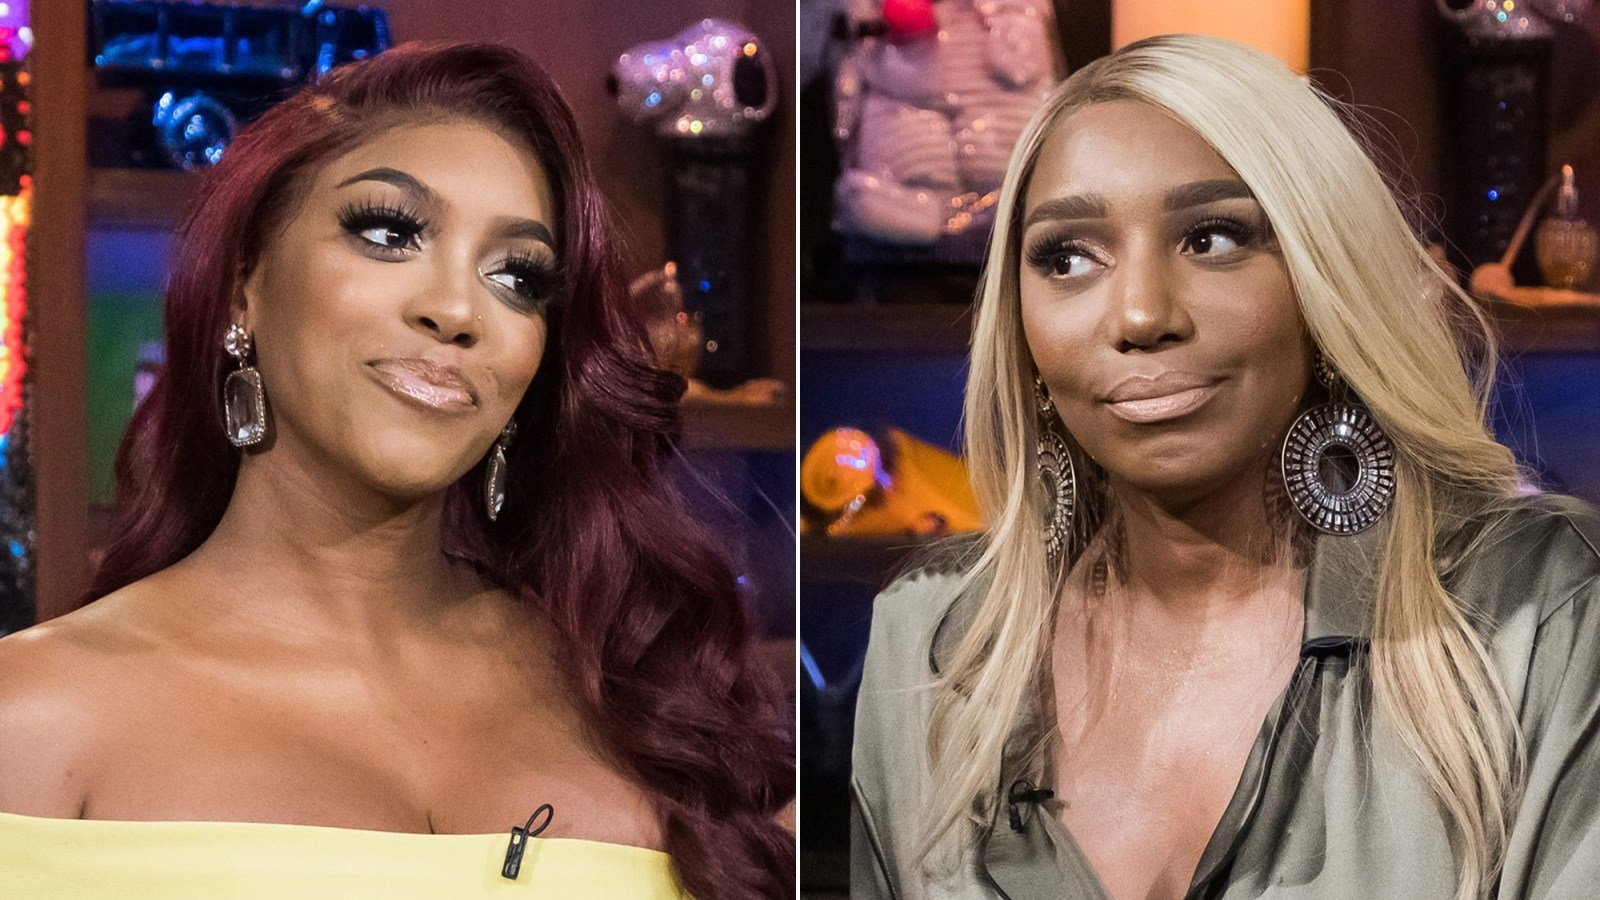 Porsha Williams Screams 'Happy Birthday' For The 'Queen Of Good Times', NeNe Leakes